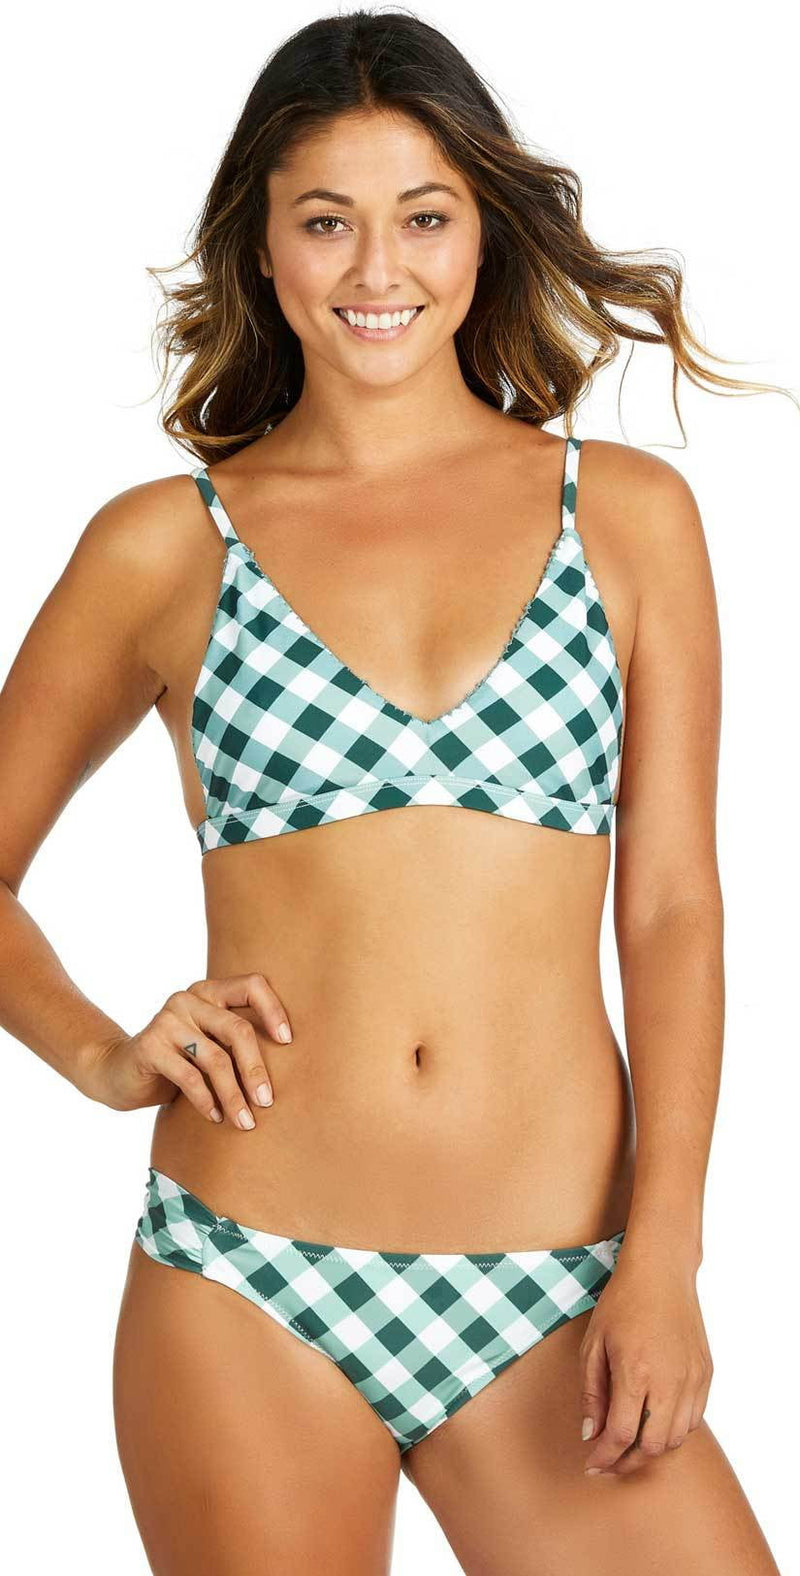 Raisins Chasing Waterfalls Boy Short Bikini Bottom Y710855-OLIV: